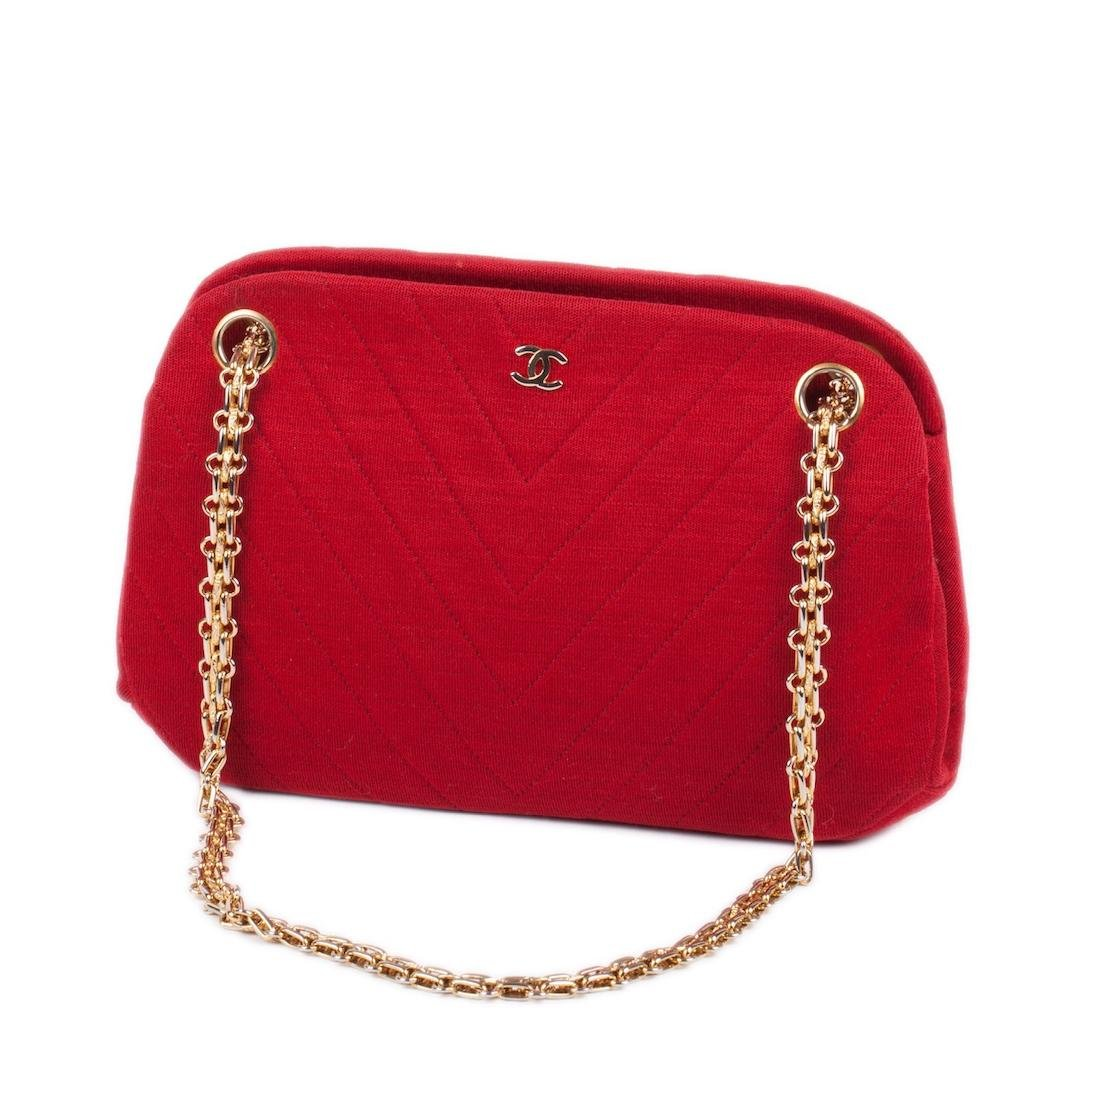 Chanel red quilted jarcey bag